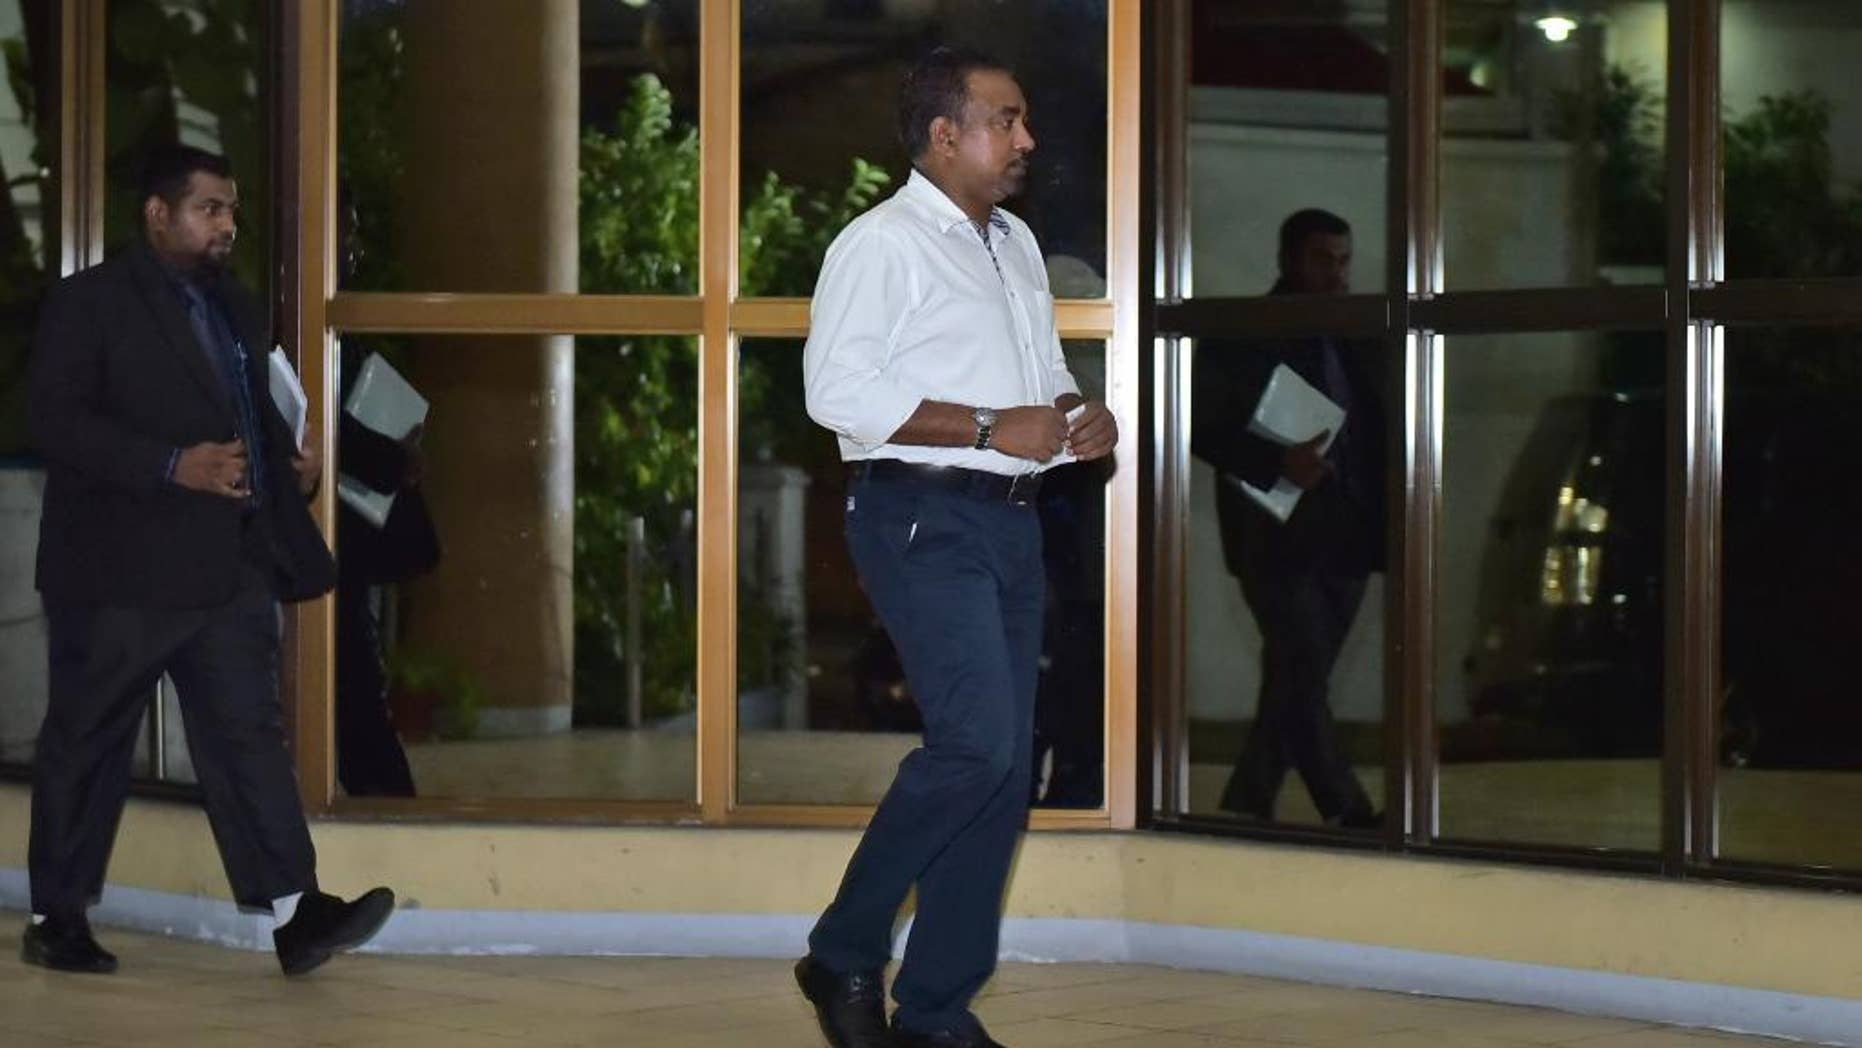 In this Friday, April 10, 2015 photo, Former defense minister Tholath Ibrahim arrives at the Criminal Court in Male, Maldives. The court sentenced Ibrahim to 10 years in prison on charges of detaining a senior judge, the same case in which former president Mohamed Nasheed has also been jailed in a trial widely criticized as politically motivated. (AP Photo/Mohamed Sharuhaan)